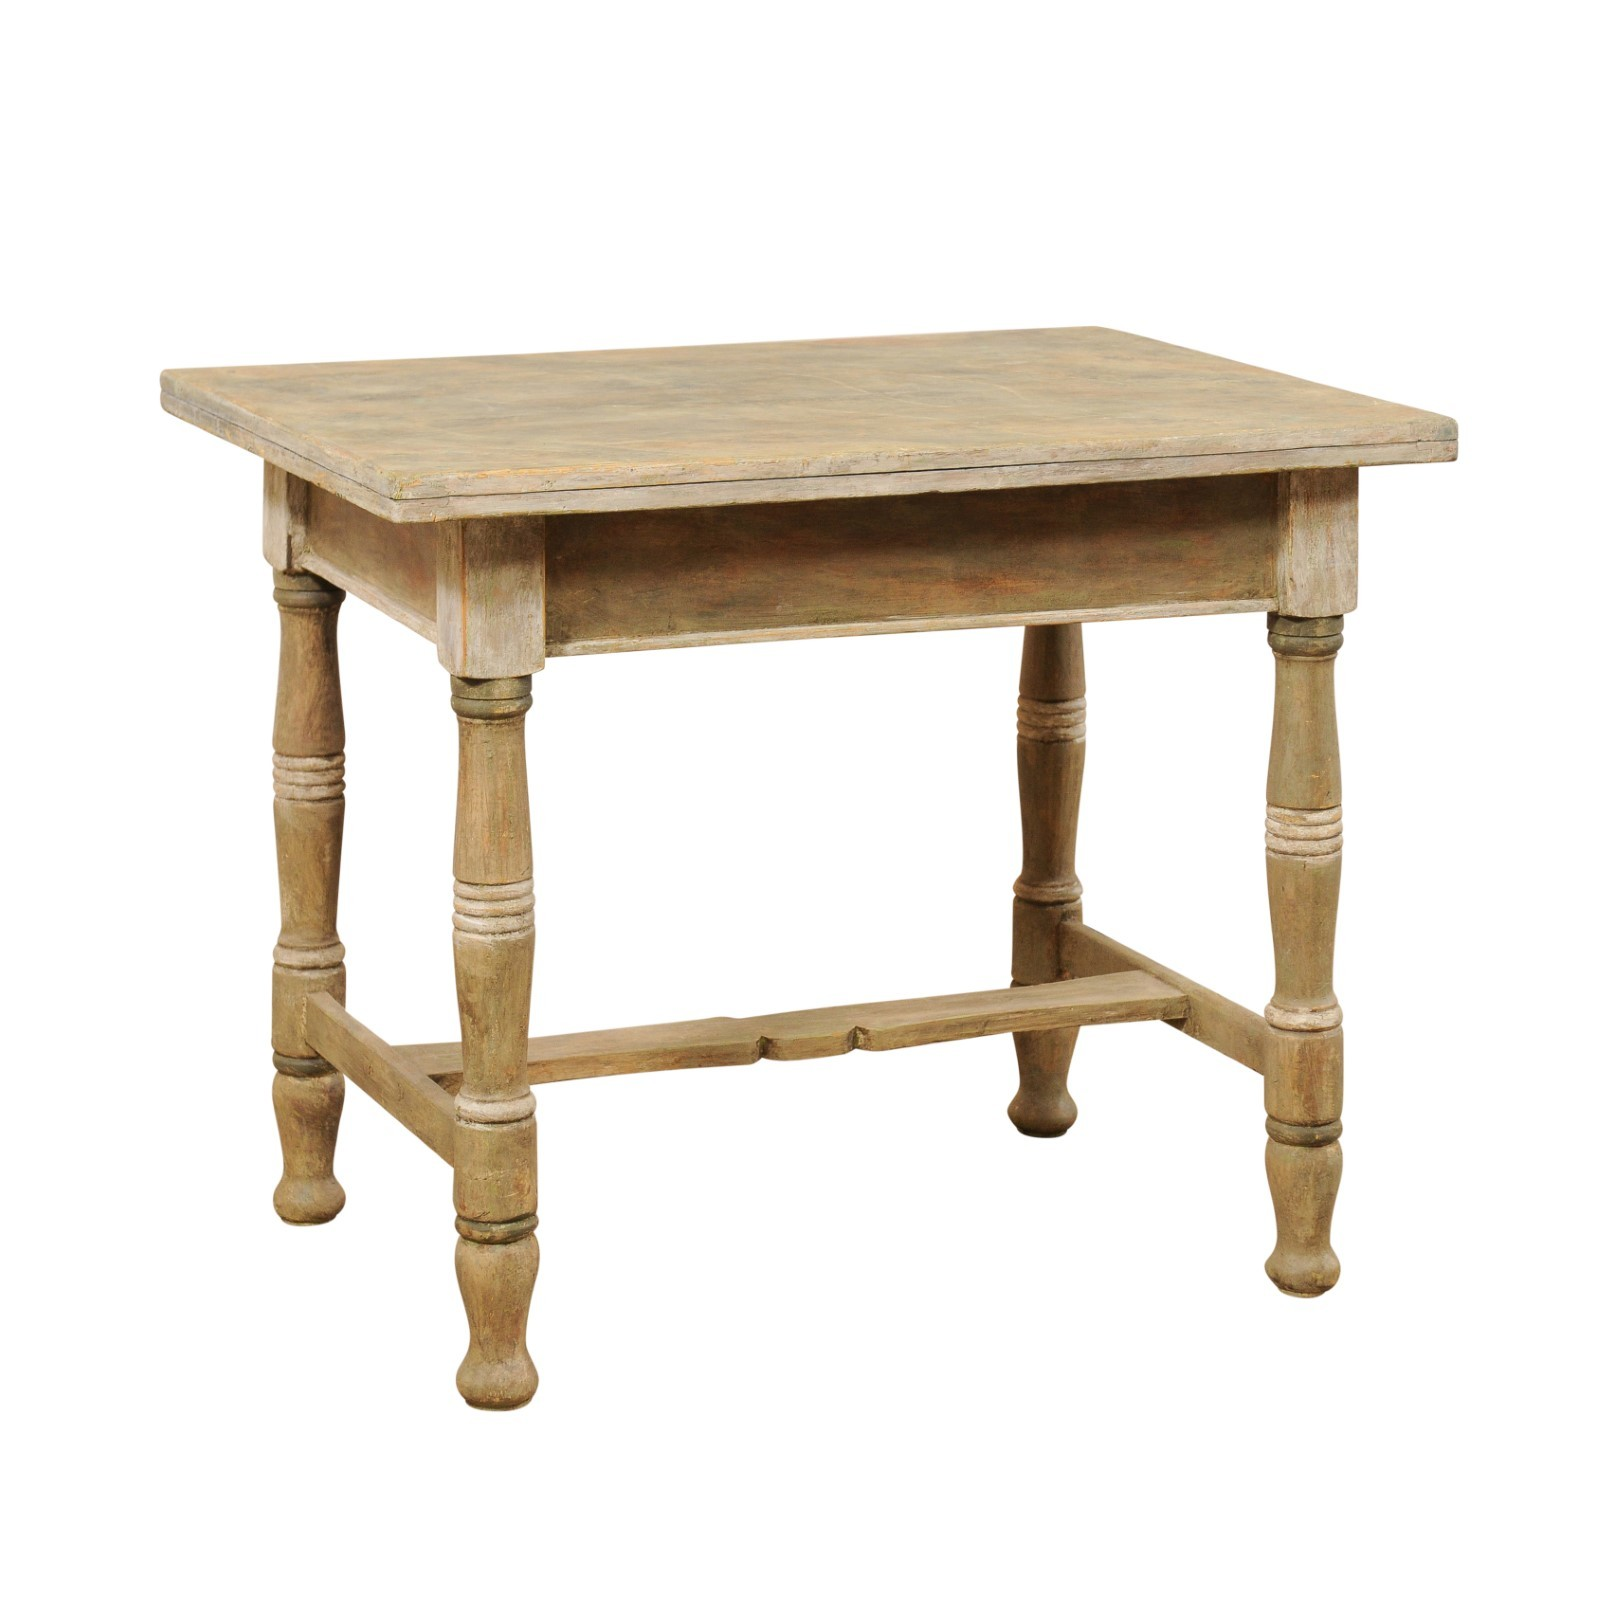 Antique Table w/Transitional Top & Storage